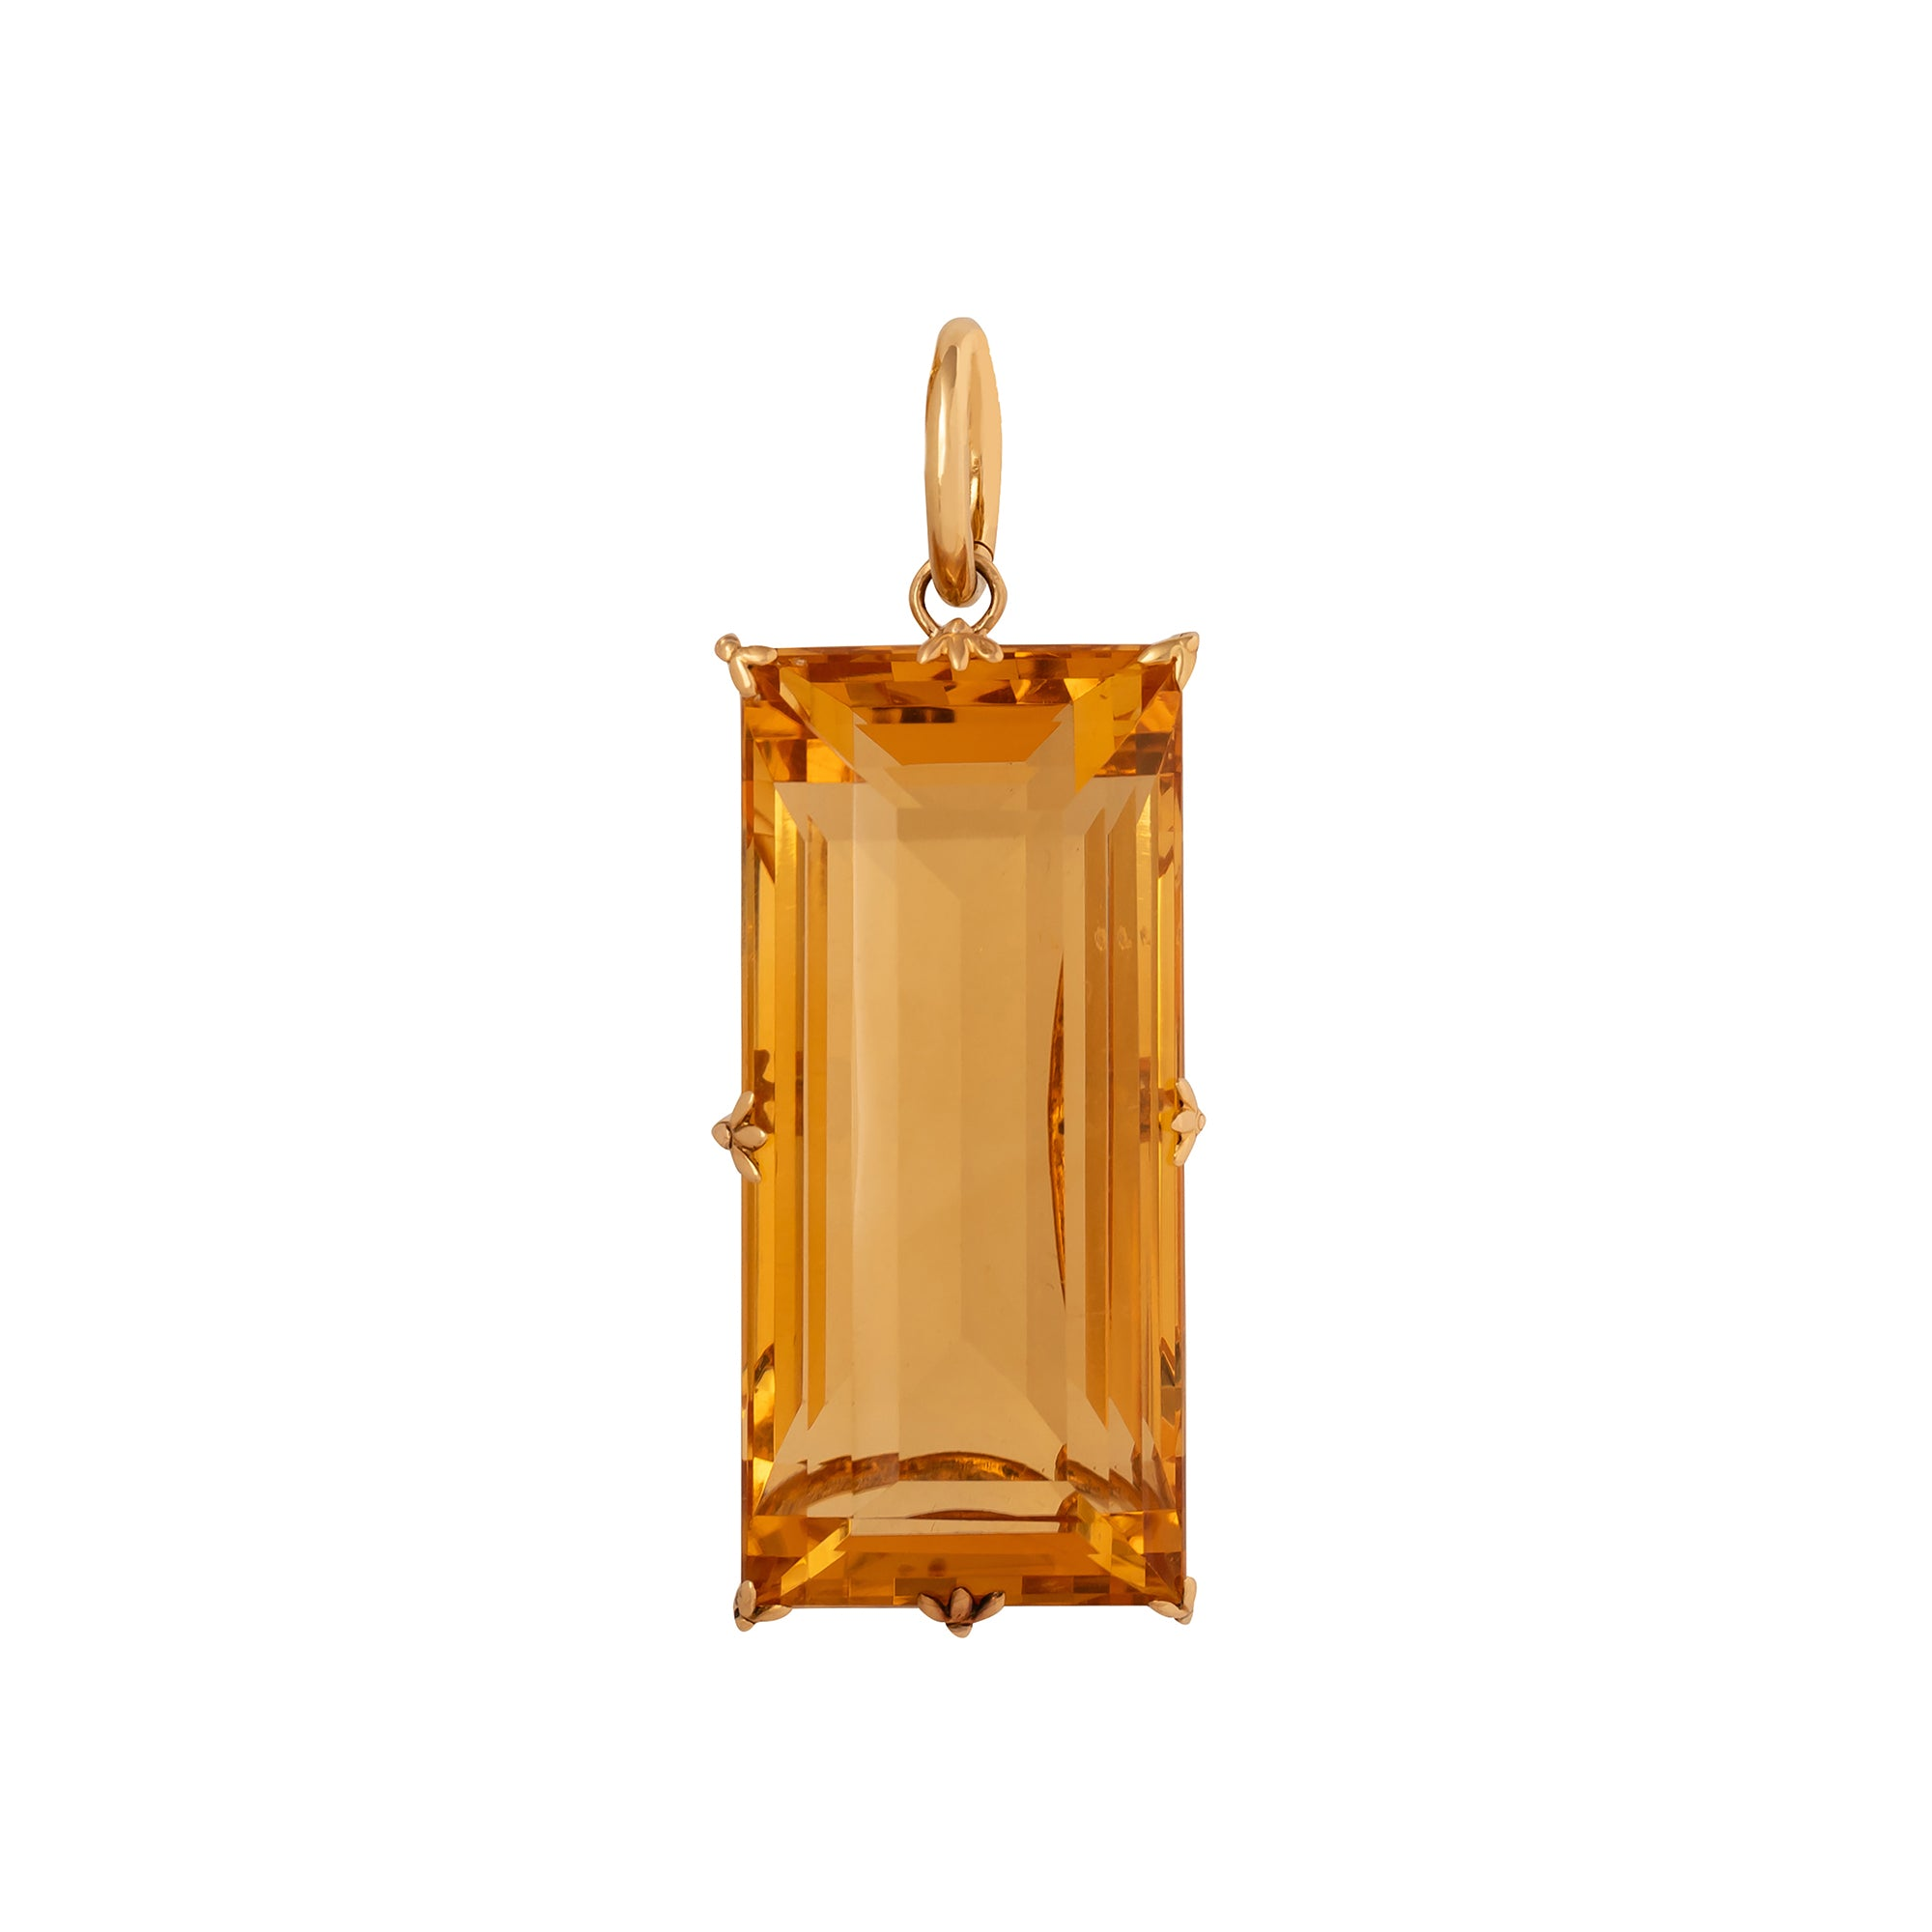 Antique & Vintage Jewelry Emerald Cut Citrine Pendant - Charms & Pendants - Broken English Jewelry